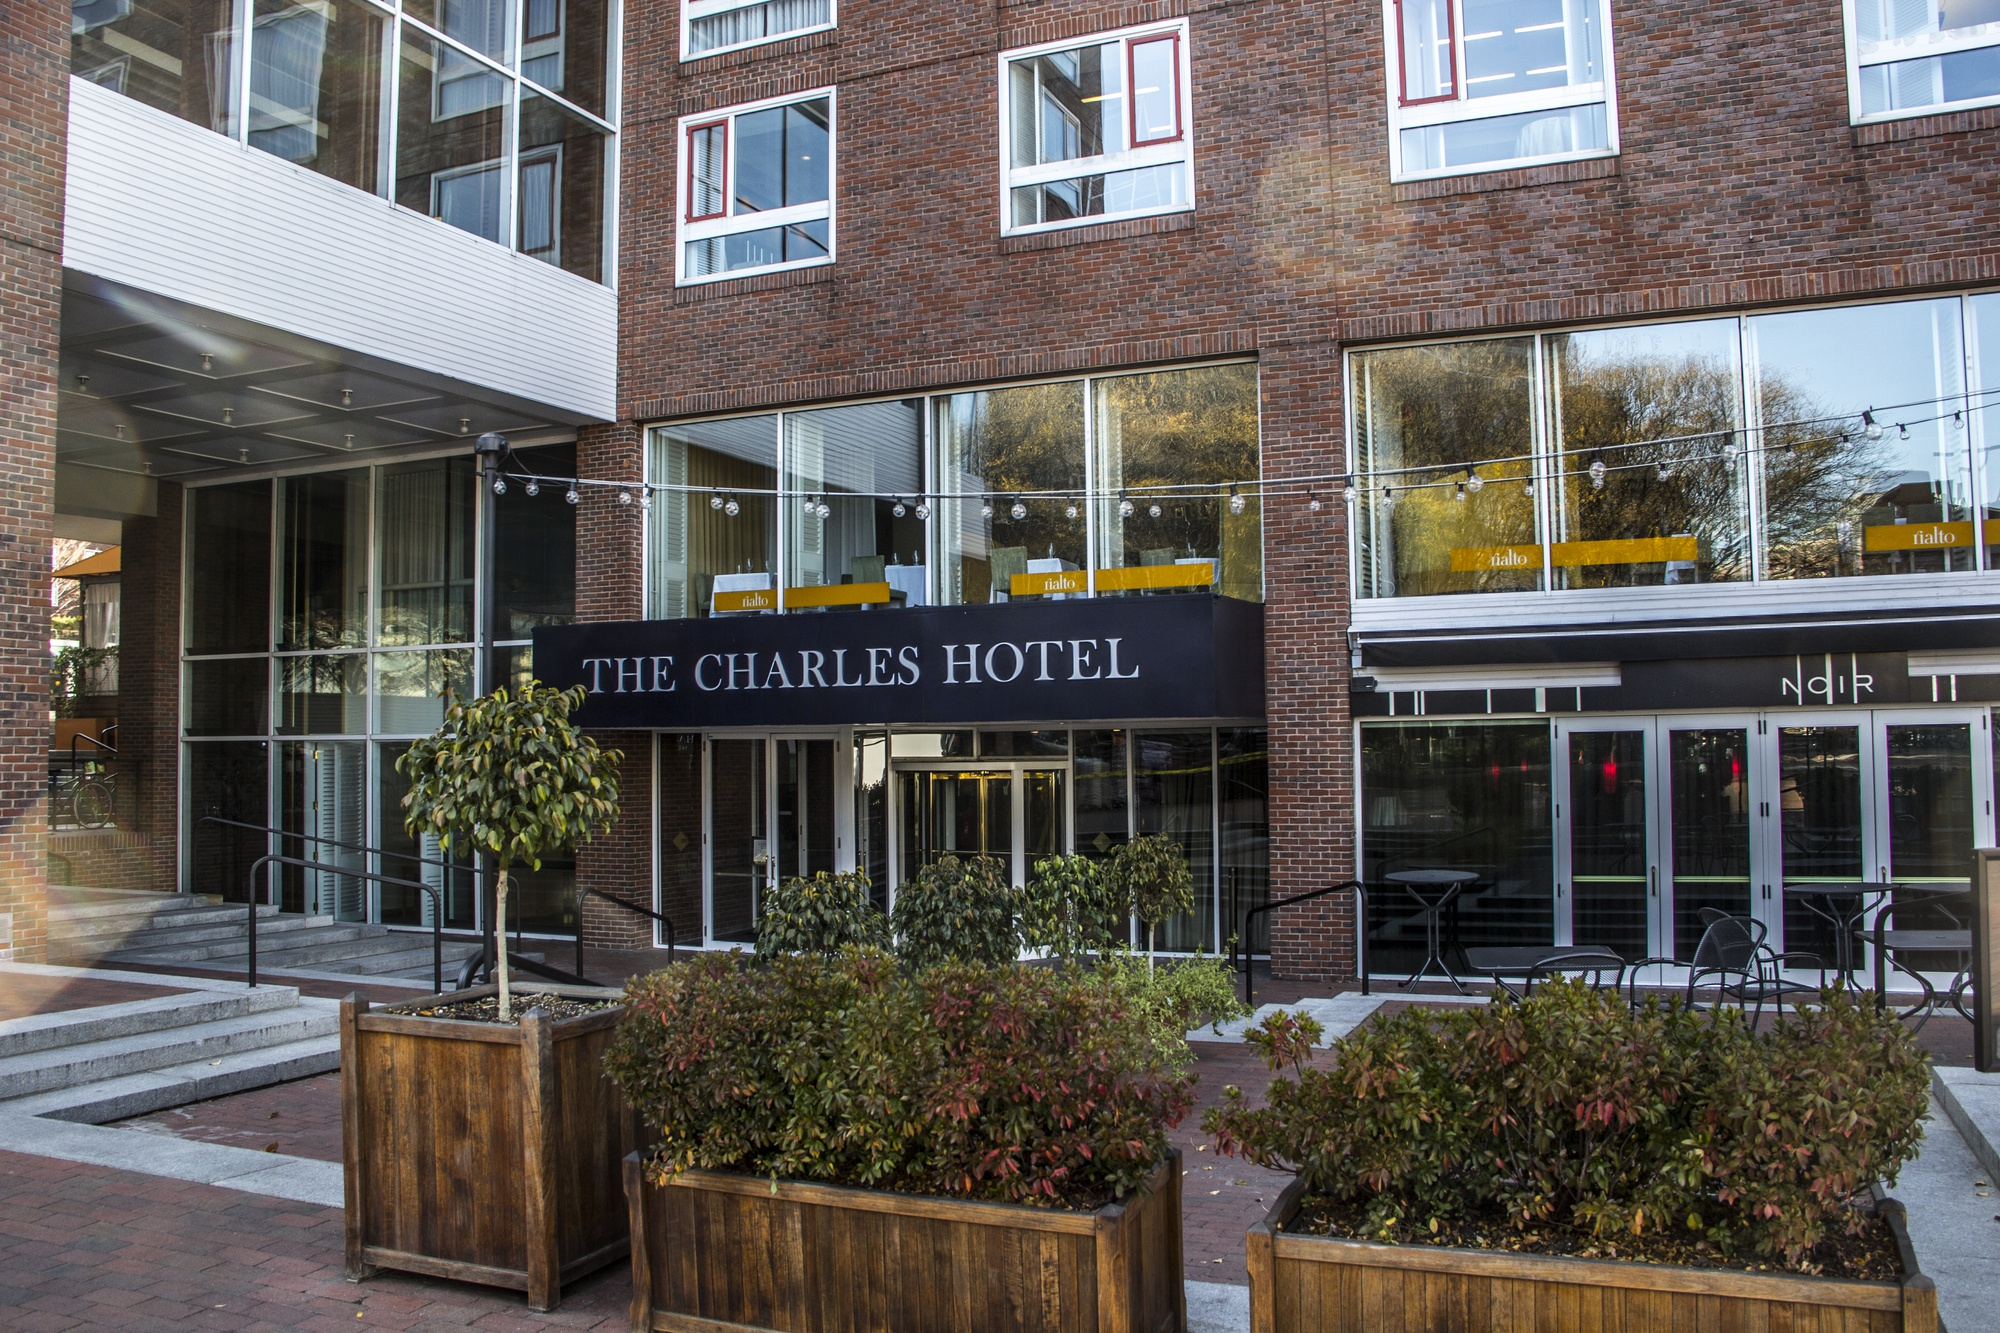 The Charles Hotel in Harvard Square is trying to increase its knowledge of Chinese culture. Over the past two years, the number of visitors from China has roughly doubled.